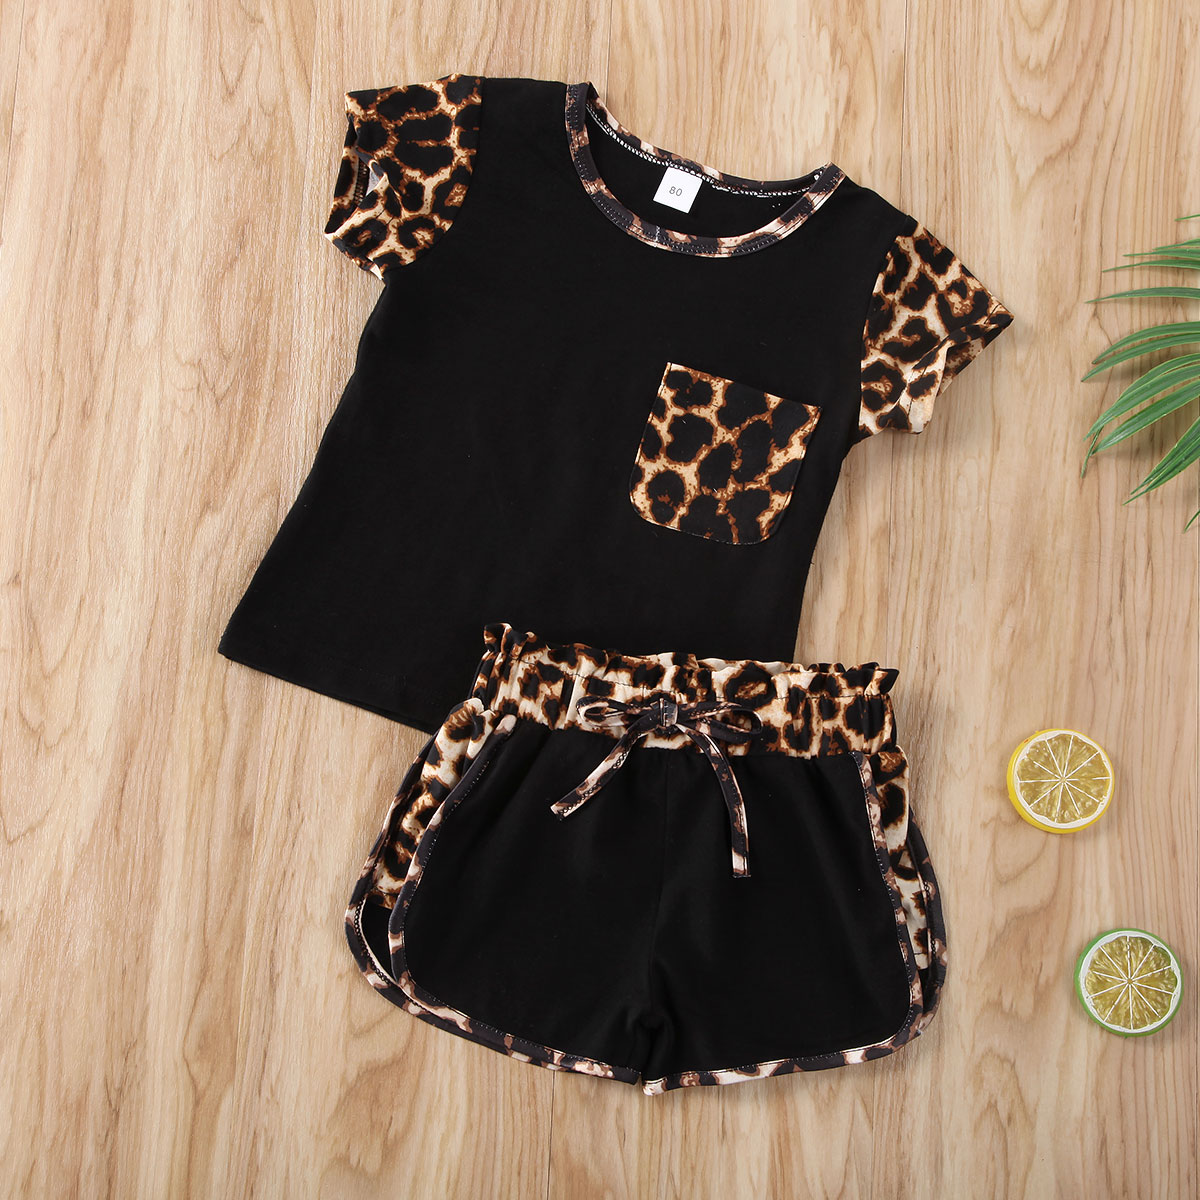 Pudcoco Newest Fashion Newborn Baby Girl Clothes Leopard Short Sleeve T-Shirt Tops Short Pants 2Pcs Outfits Cotton Clothes